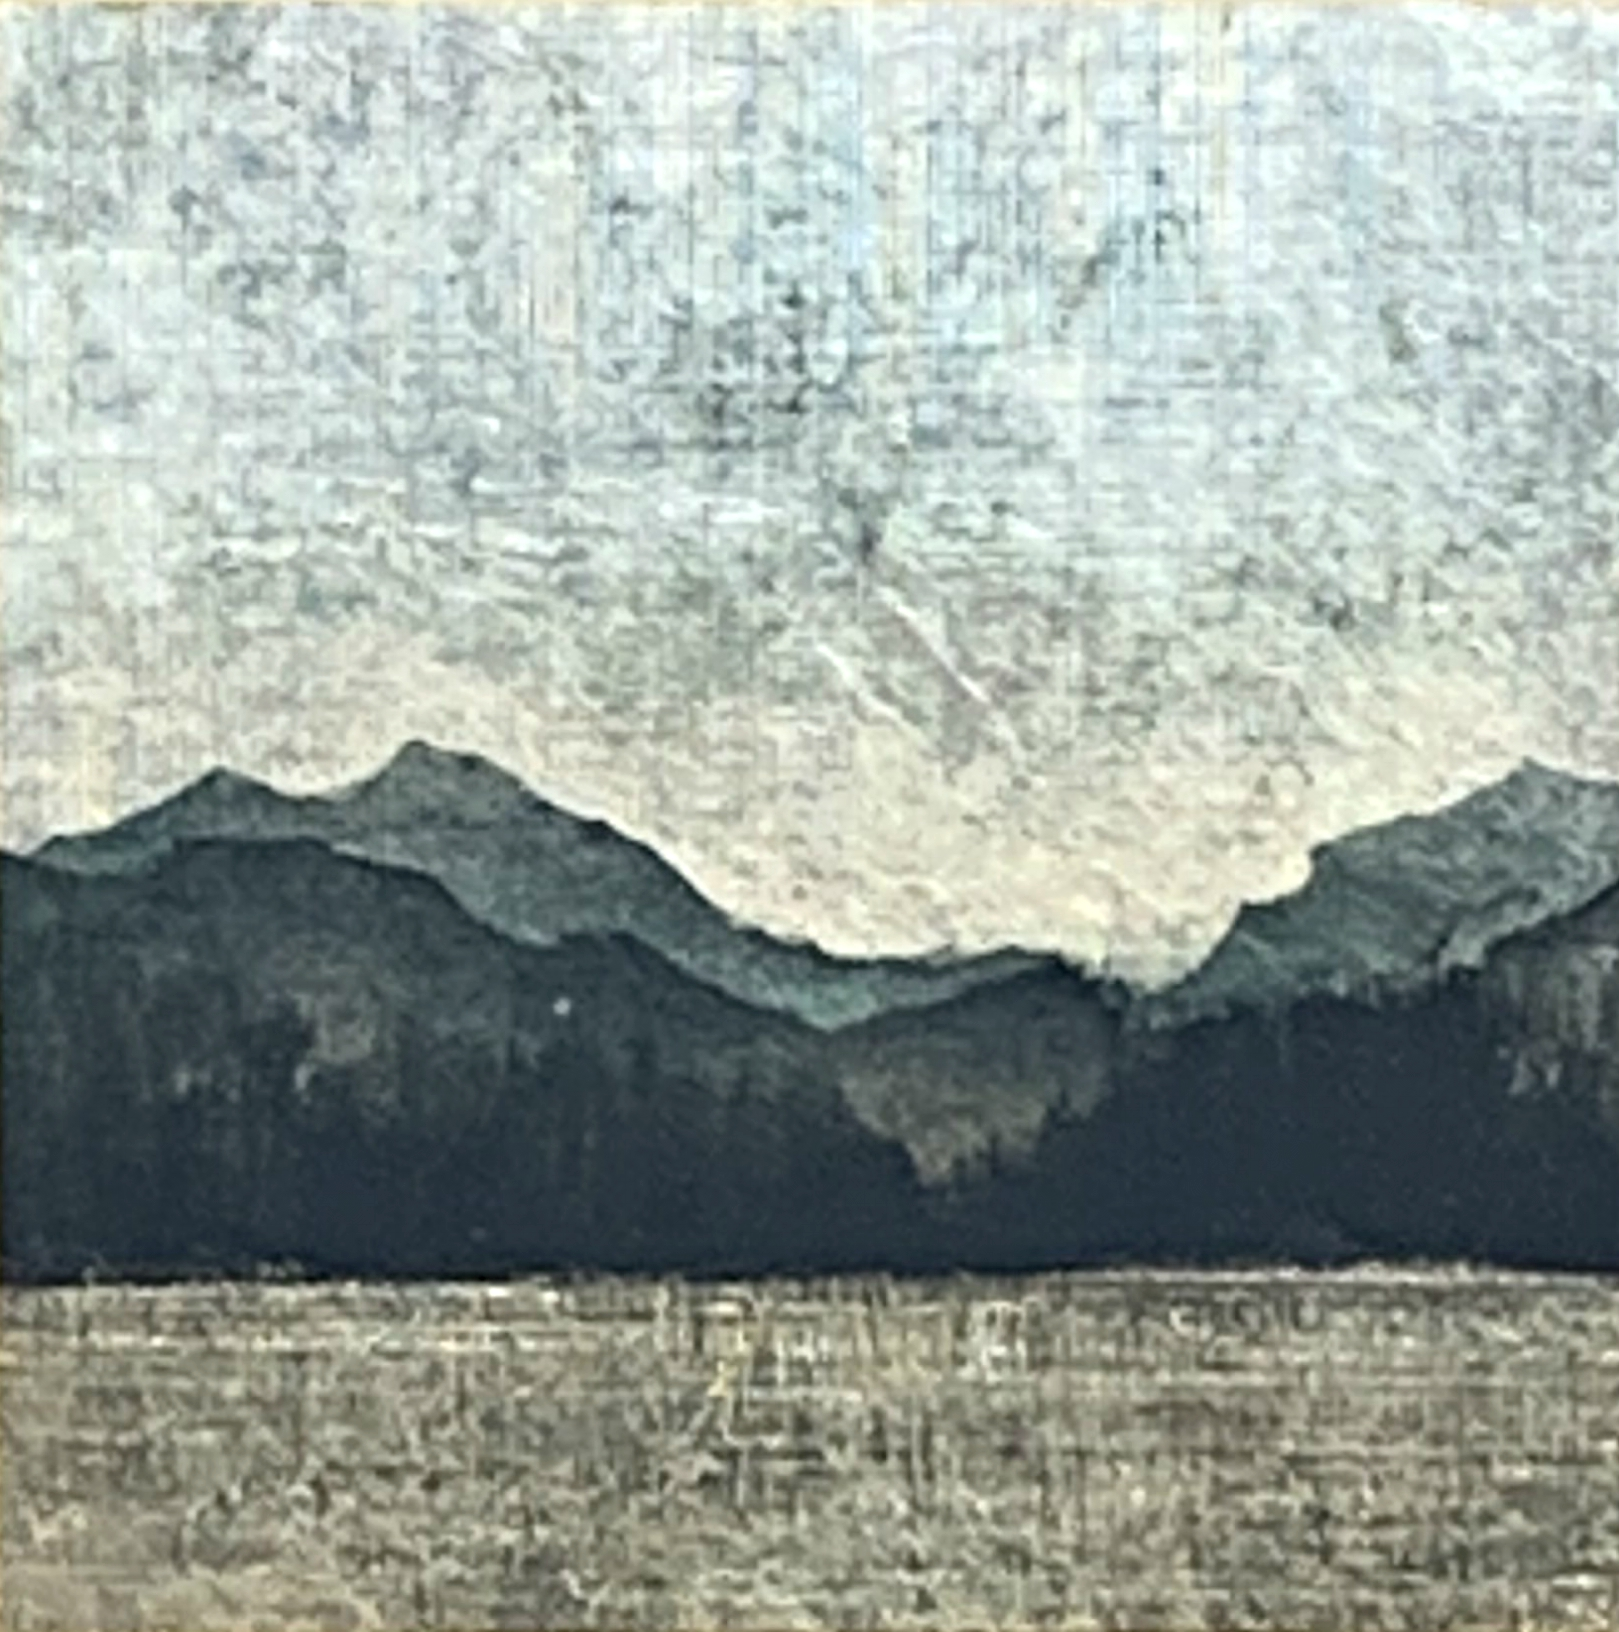 182, mixed media landscape painting by David Graff | Effusion Art Gallery + Cast Glass Studio, Invermere BC